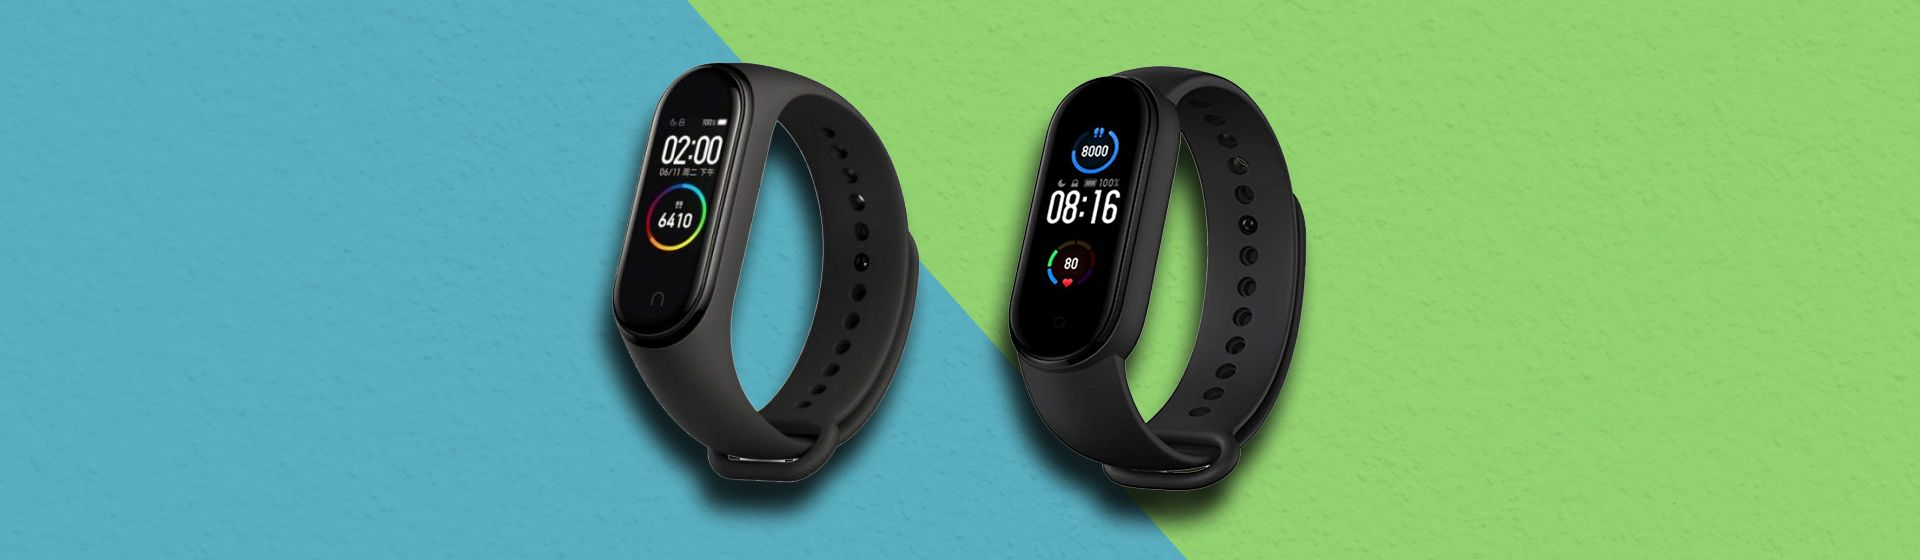 Mi Band 4 vs Mi Band 5: o que muda entre as smartbands da Xiaomi?